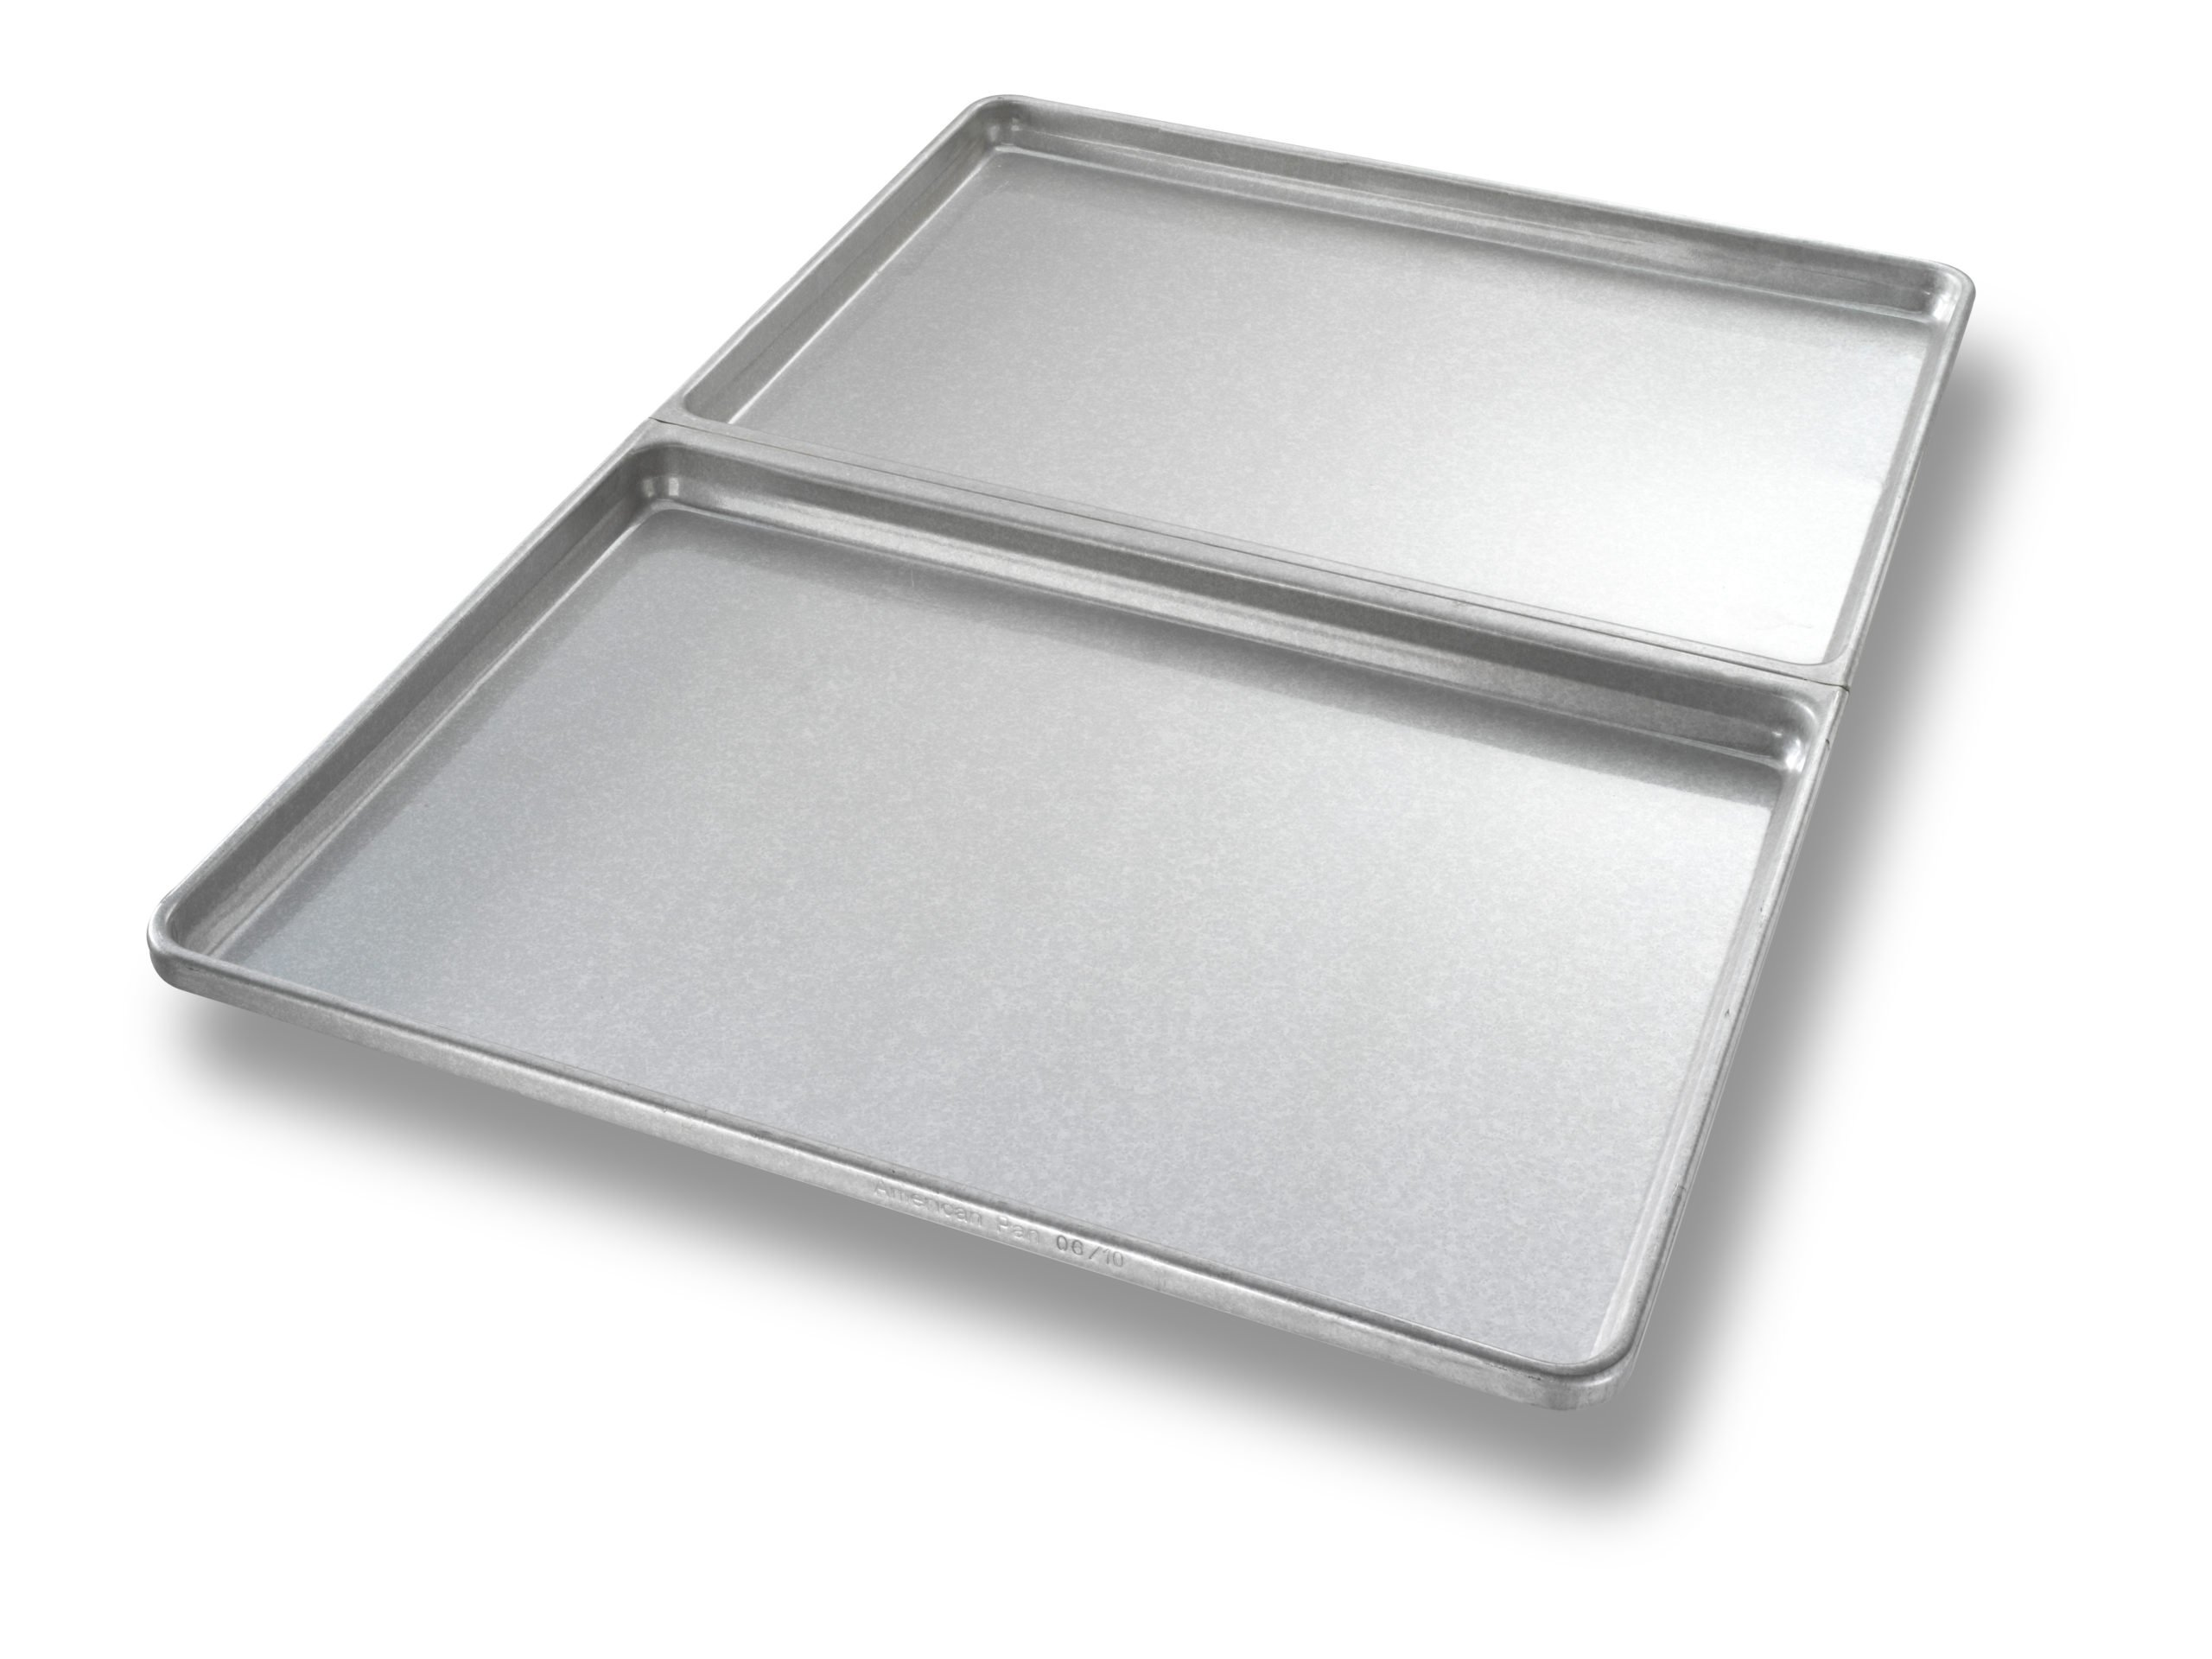 2-On Full-Size Sheet Pan – AMERICOAT® Coating